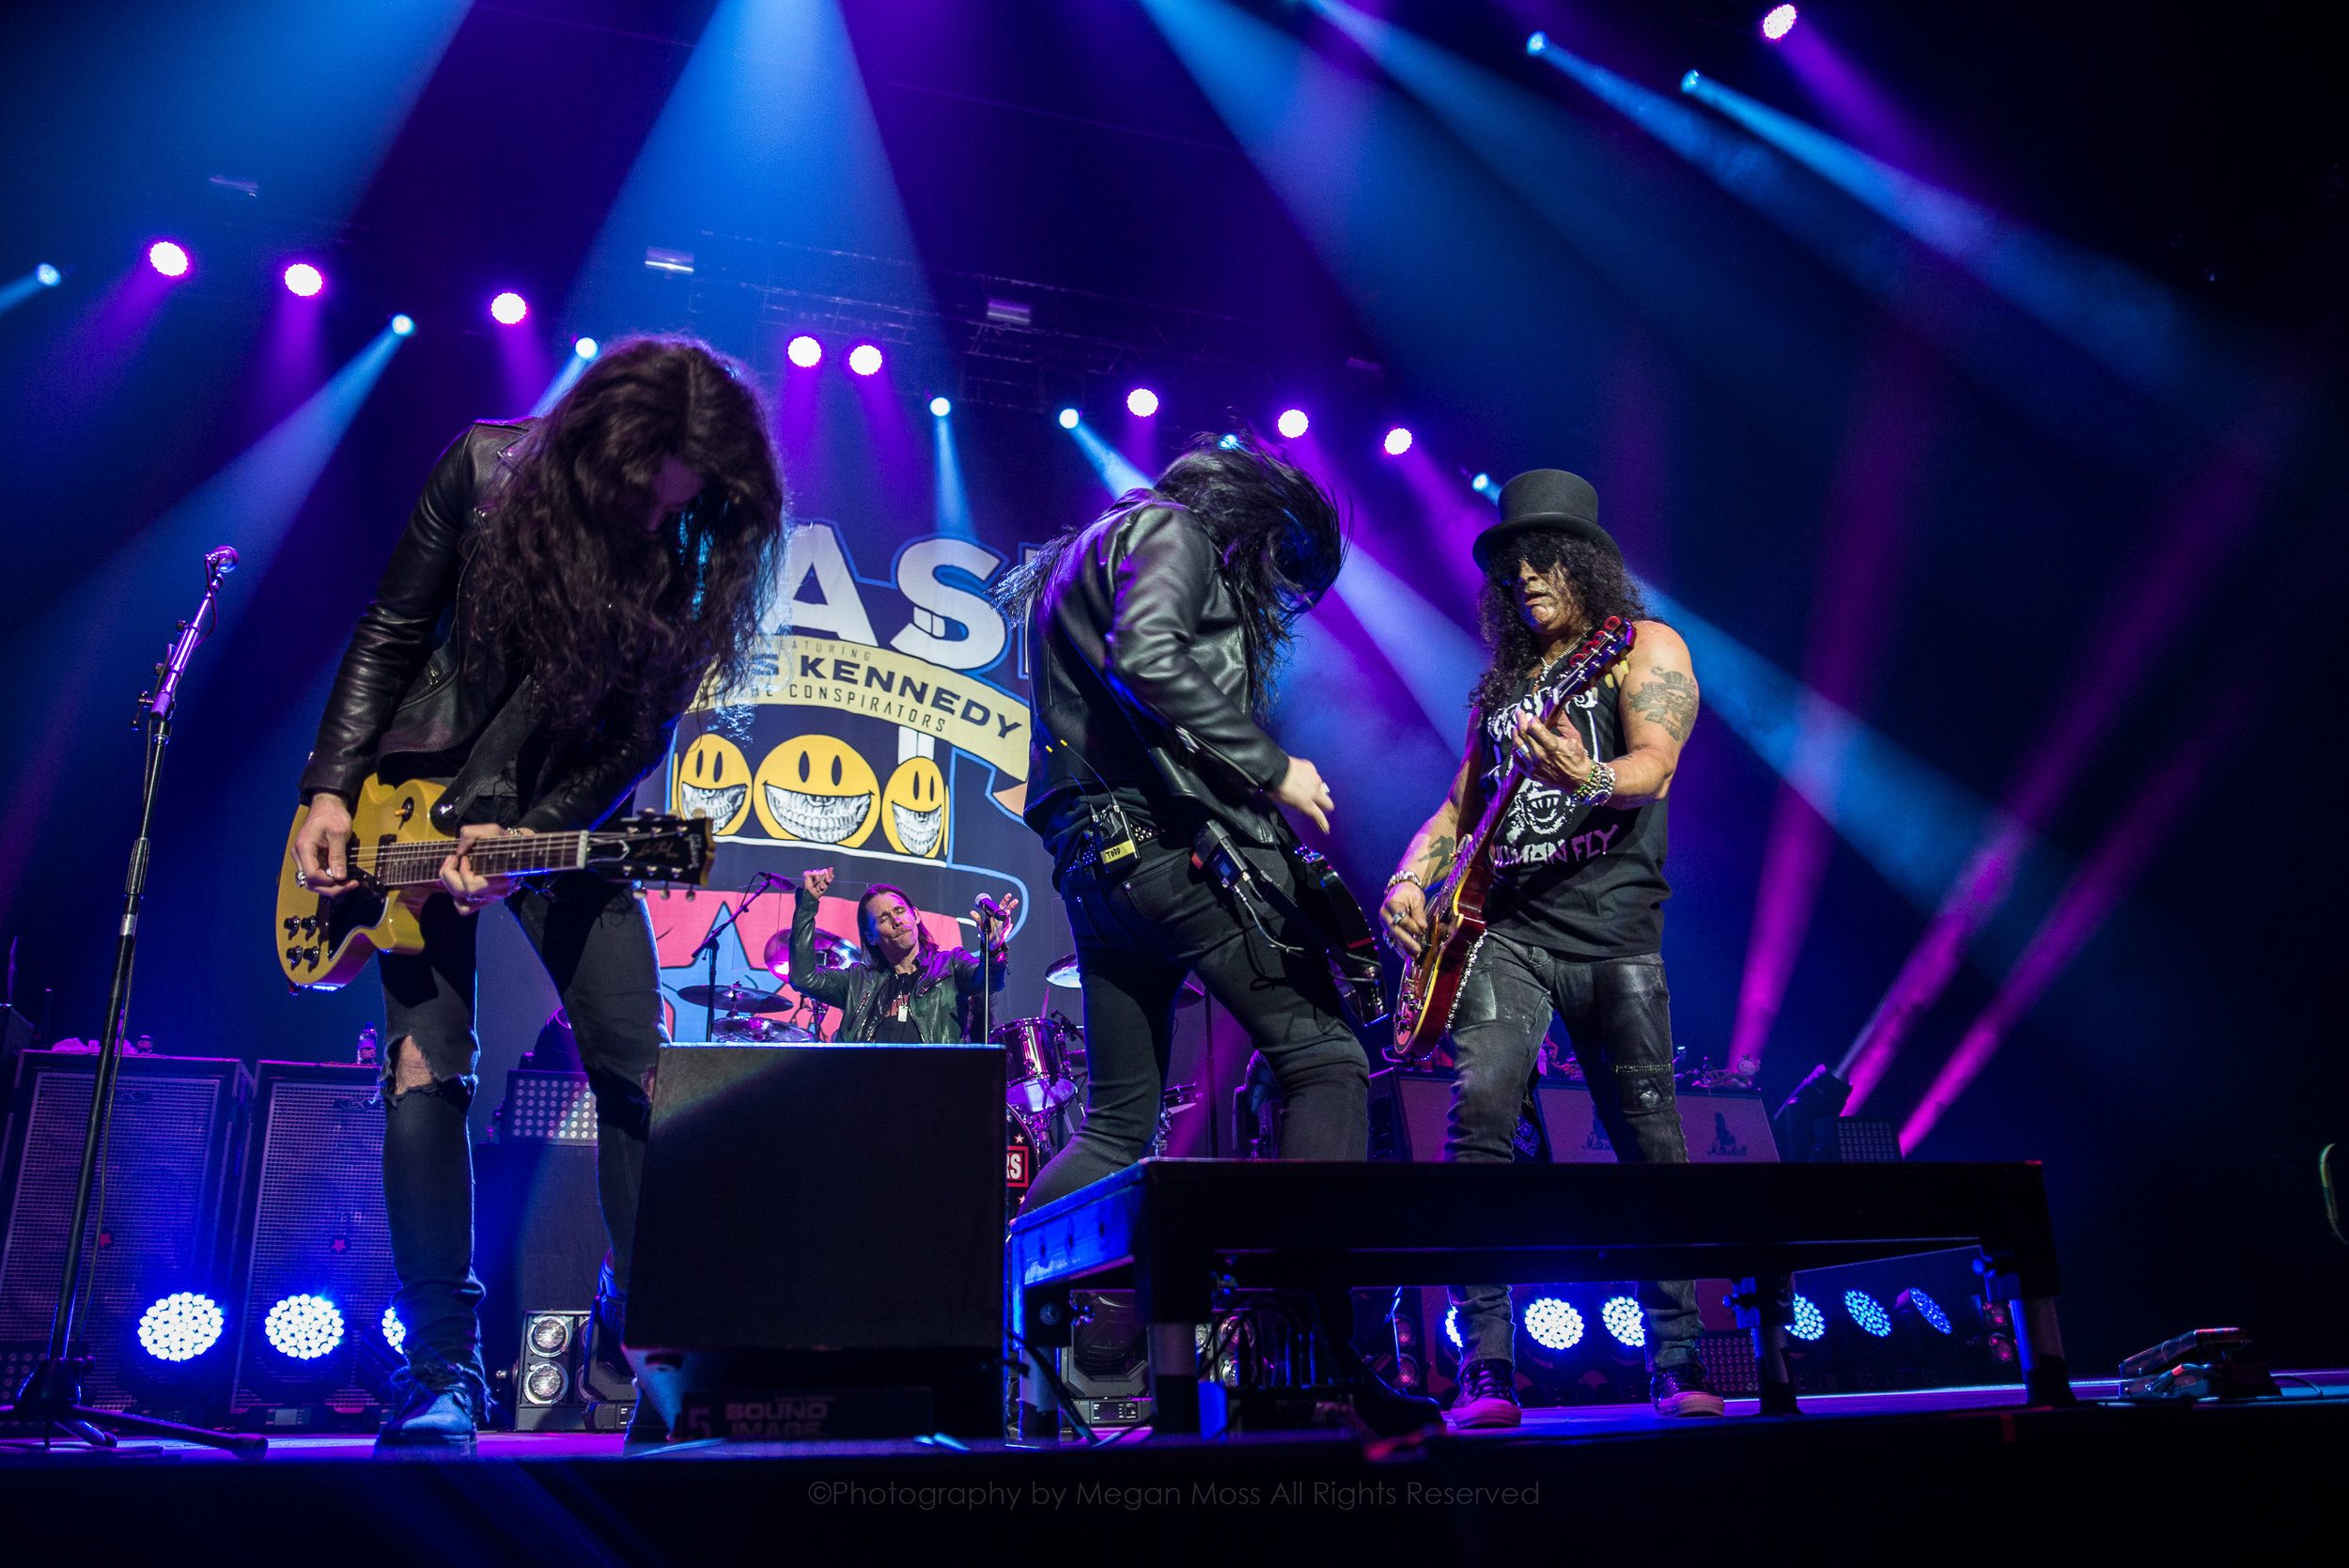 SLASH&MKK_PhotoMeganMoss-29.jpg